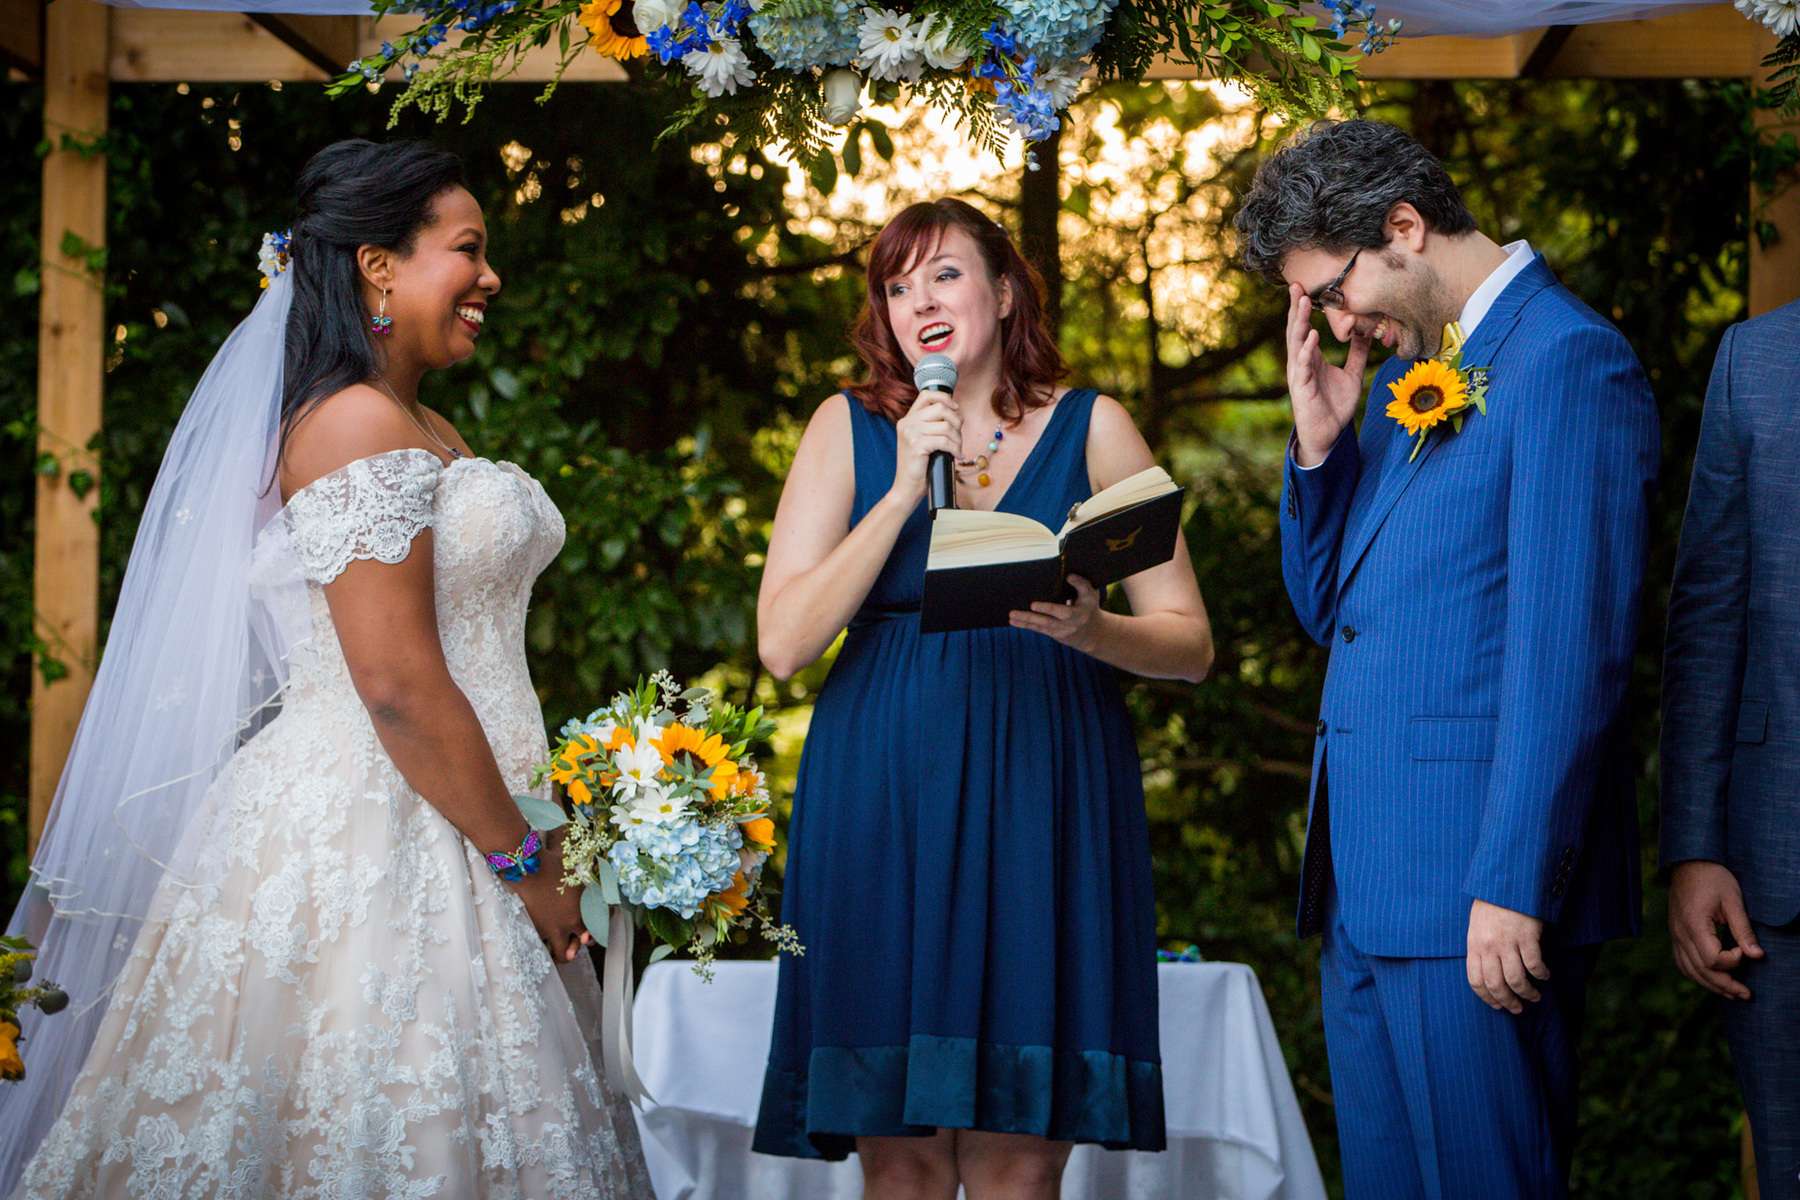 Long Island wedding photographer funny moment during vows with friend as officiant in mixed race wedding